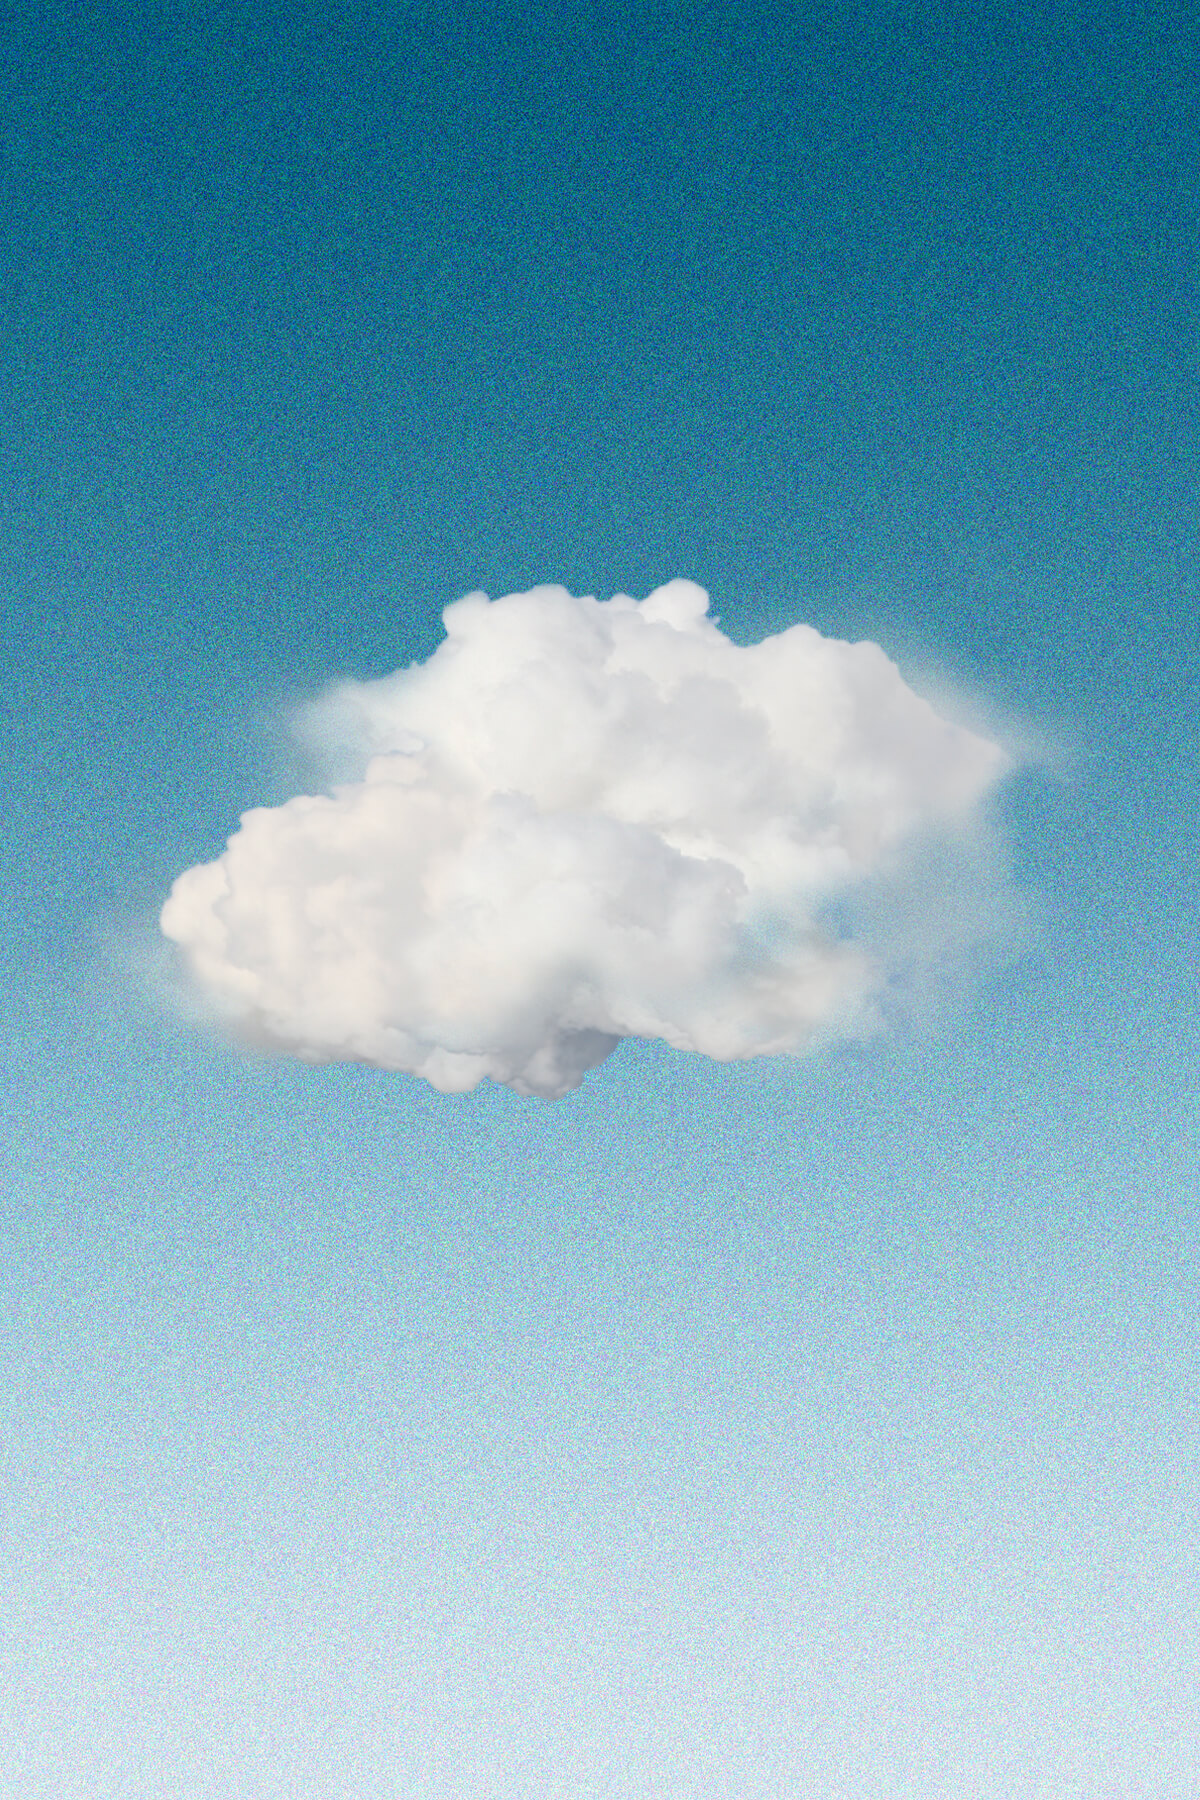 A digital painting - a small fluffy white cloud, fading into mist on either side, floats against a sky blue gradient, from dark blue at the top to light gray at the bottom.